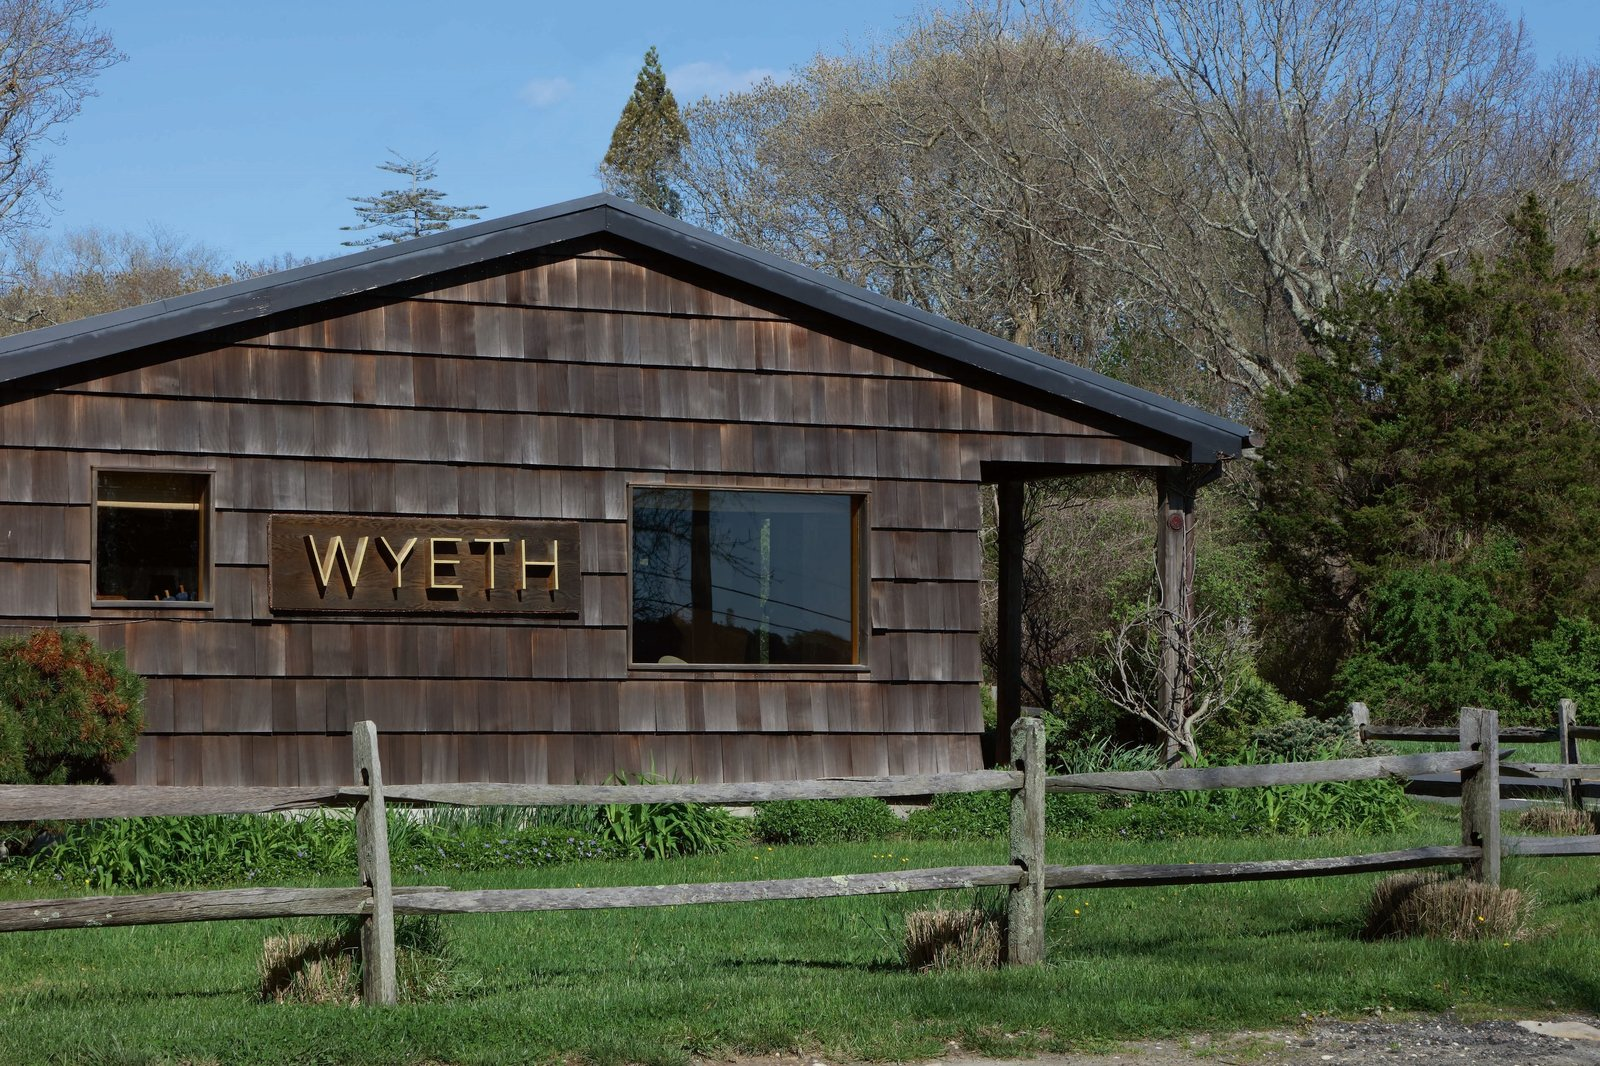 WYETH'S Sagaponack location